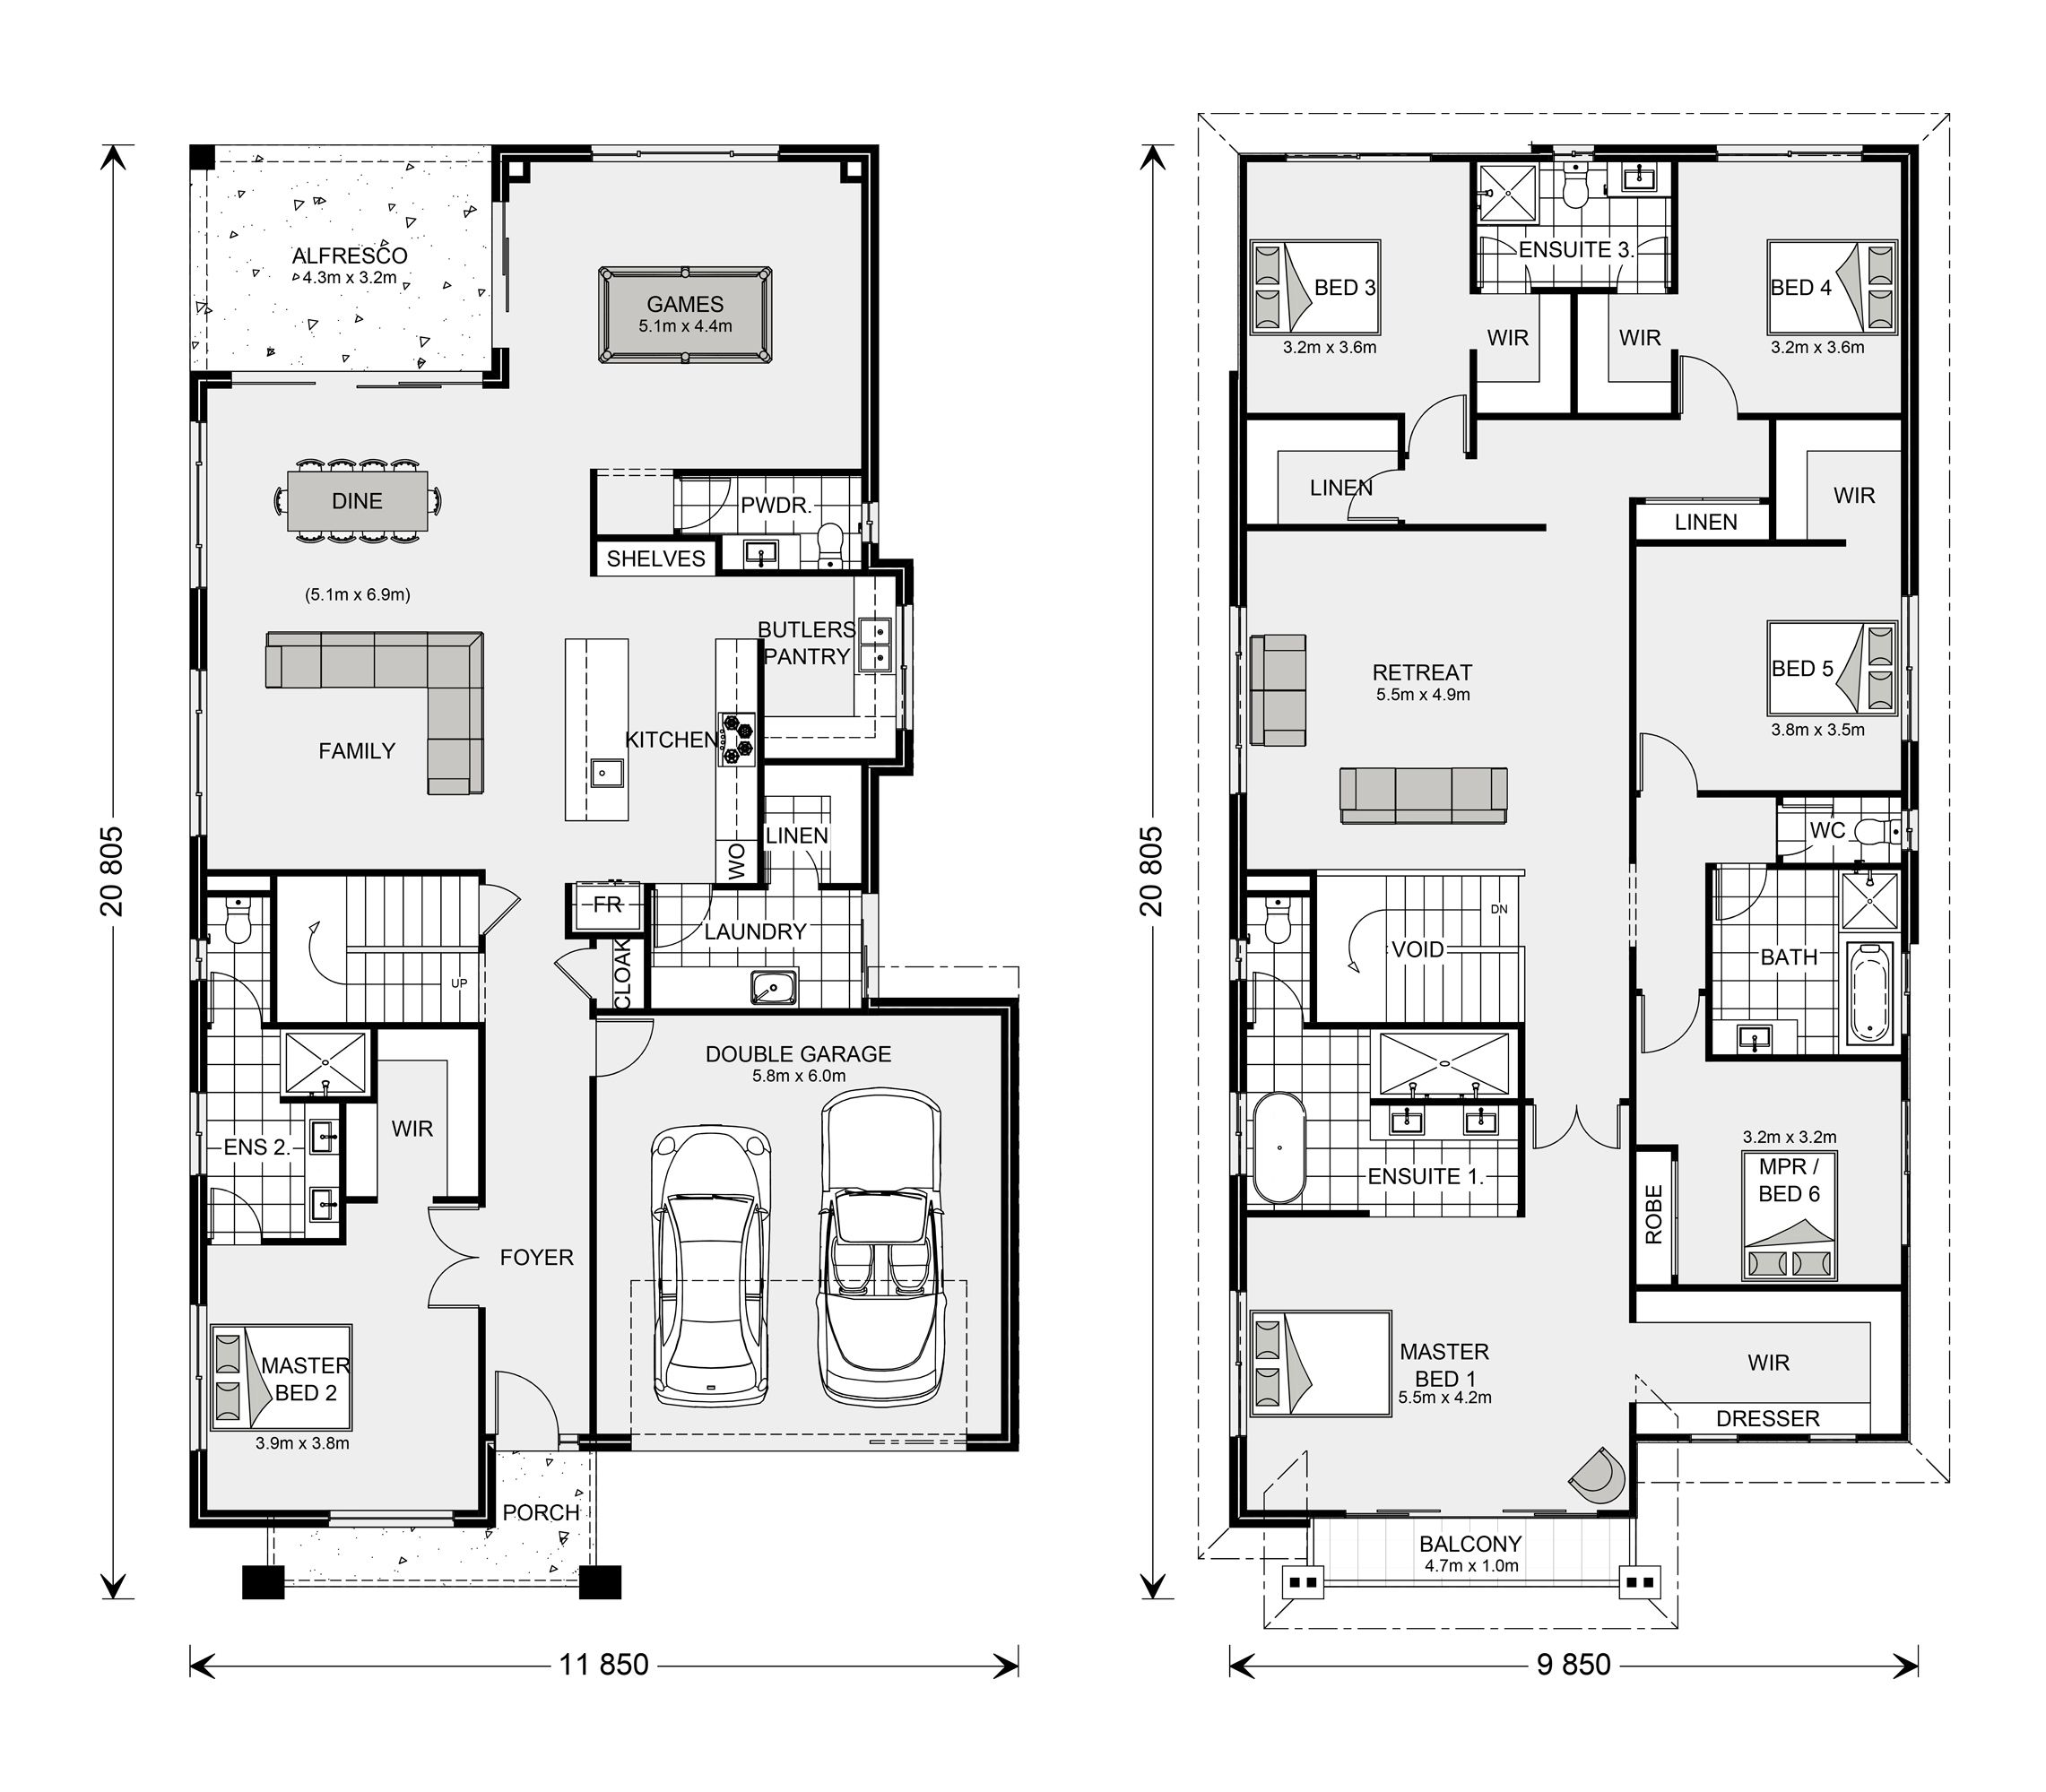 73a97c60fa139fe29601916a2d0bbbf0 Top Result 50 New Tri Level House Plans